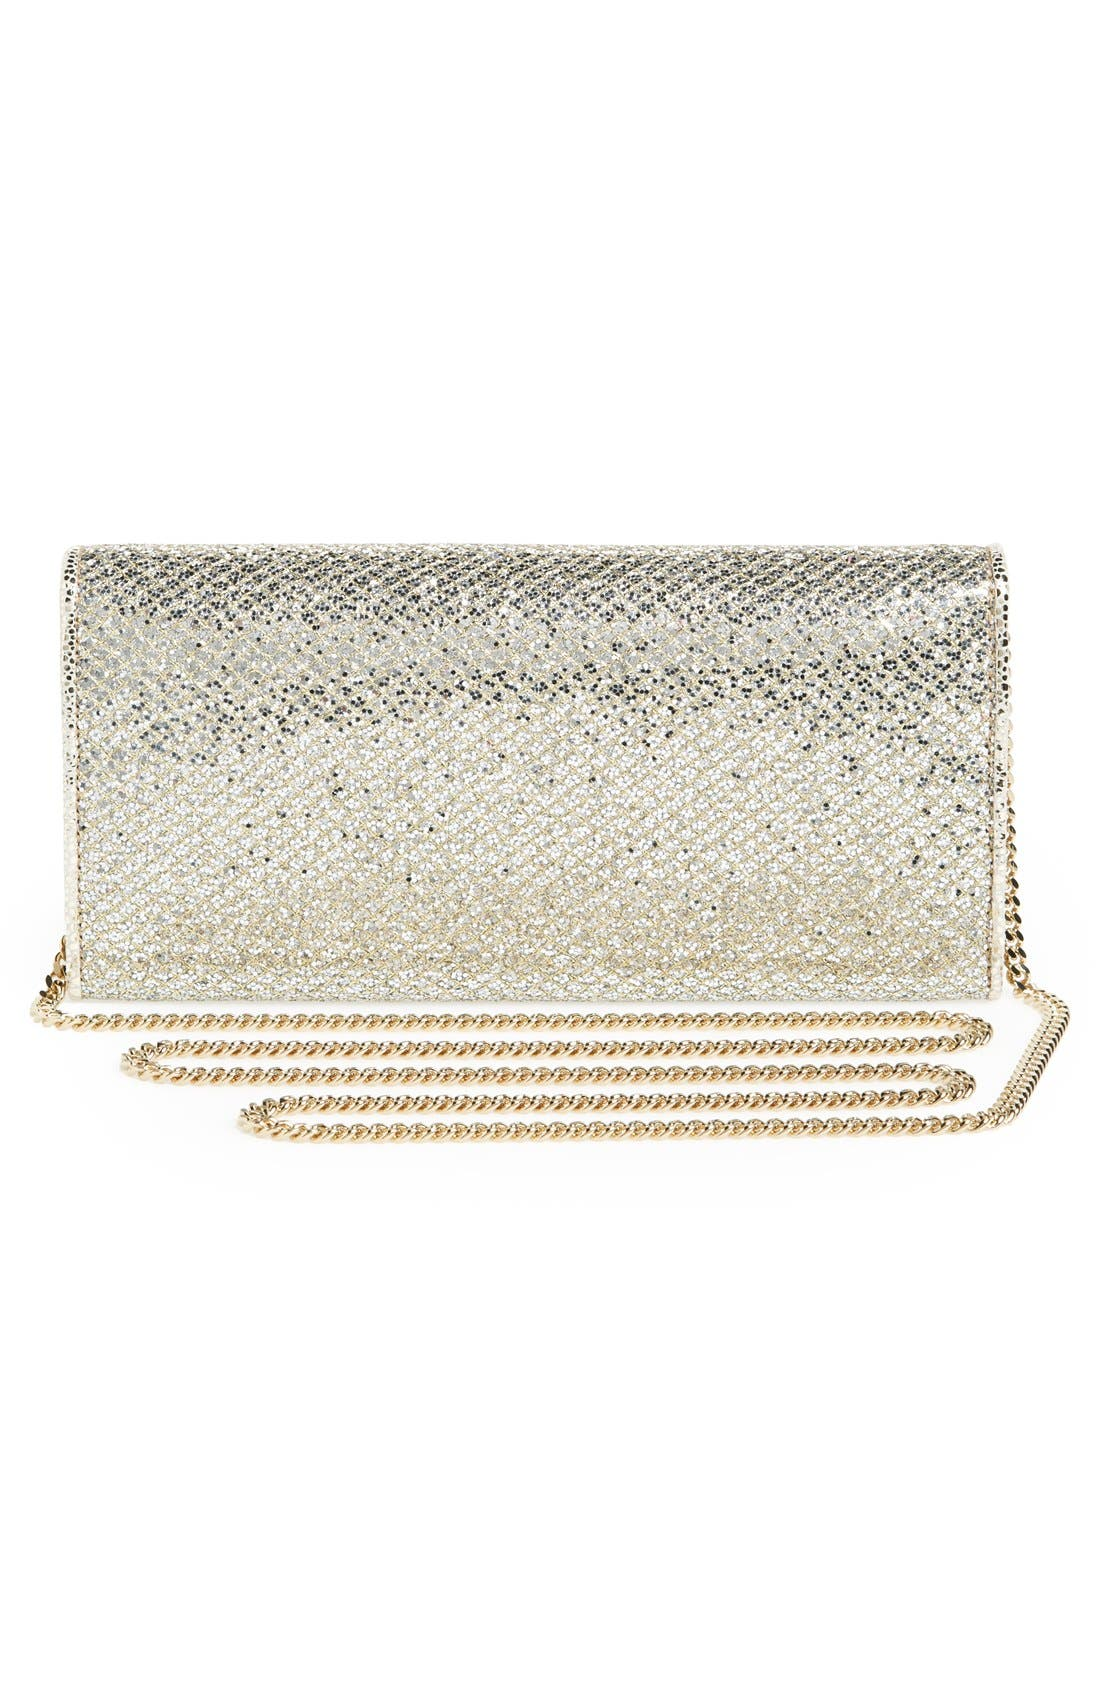 Alternate Image 3  - Jimmy Choo 'Milla' Glitter Wallet on a Chain